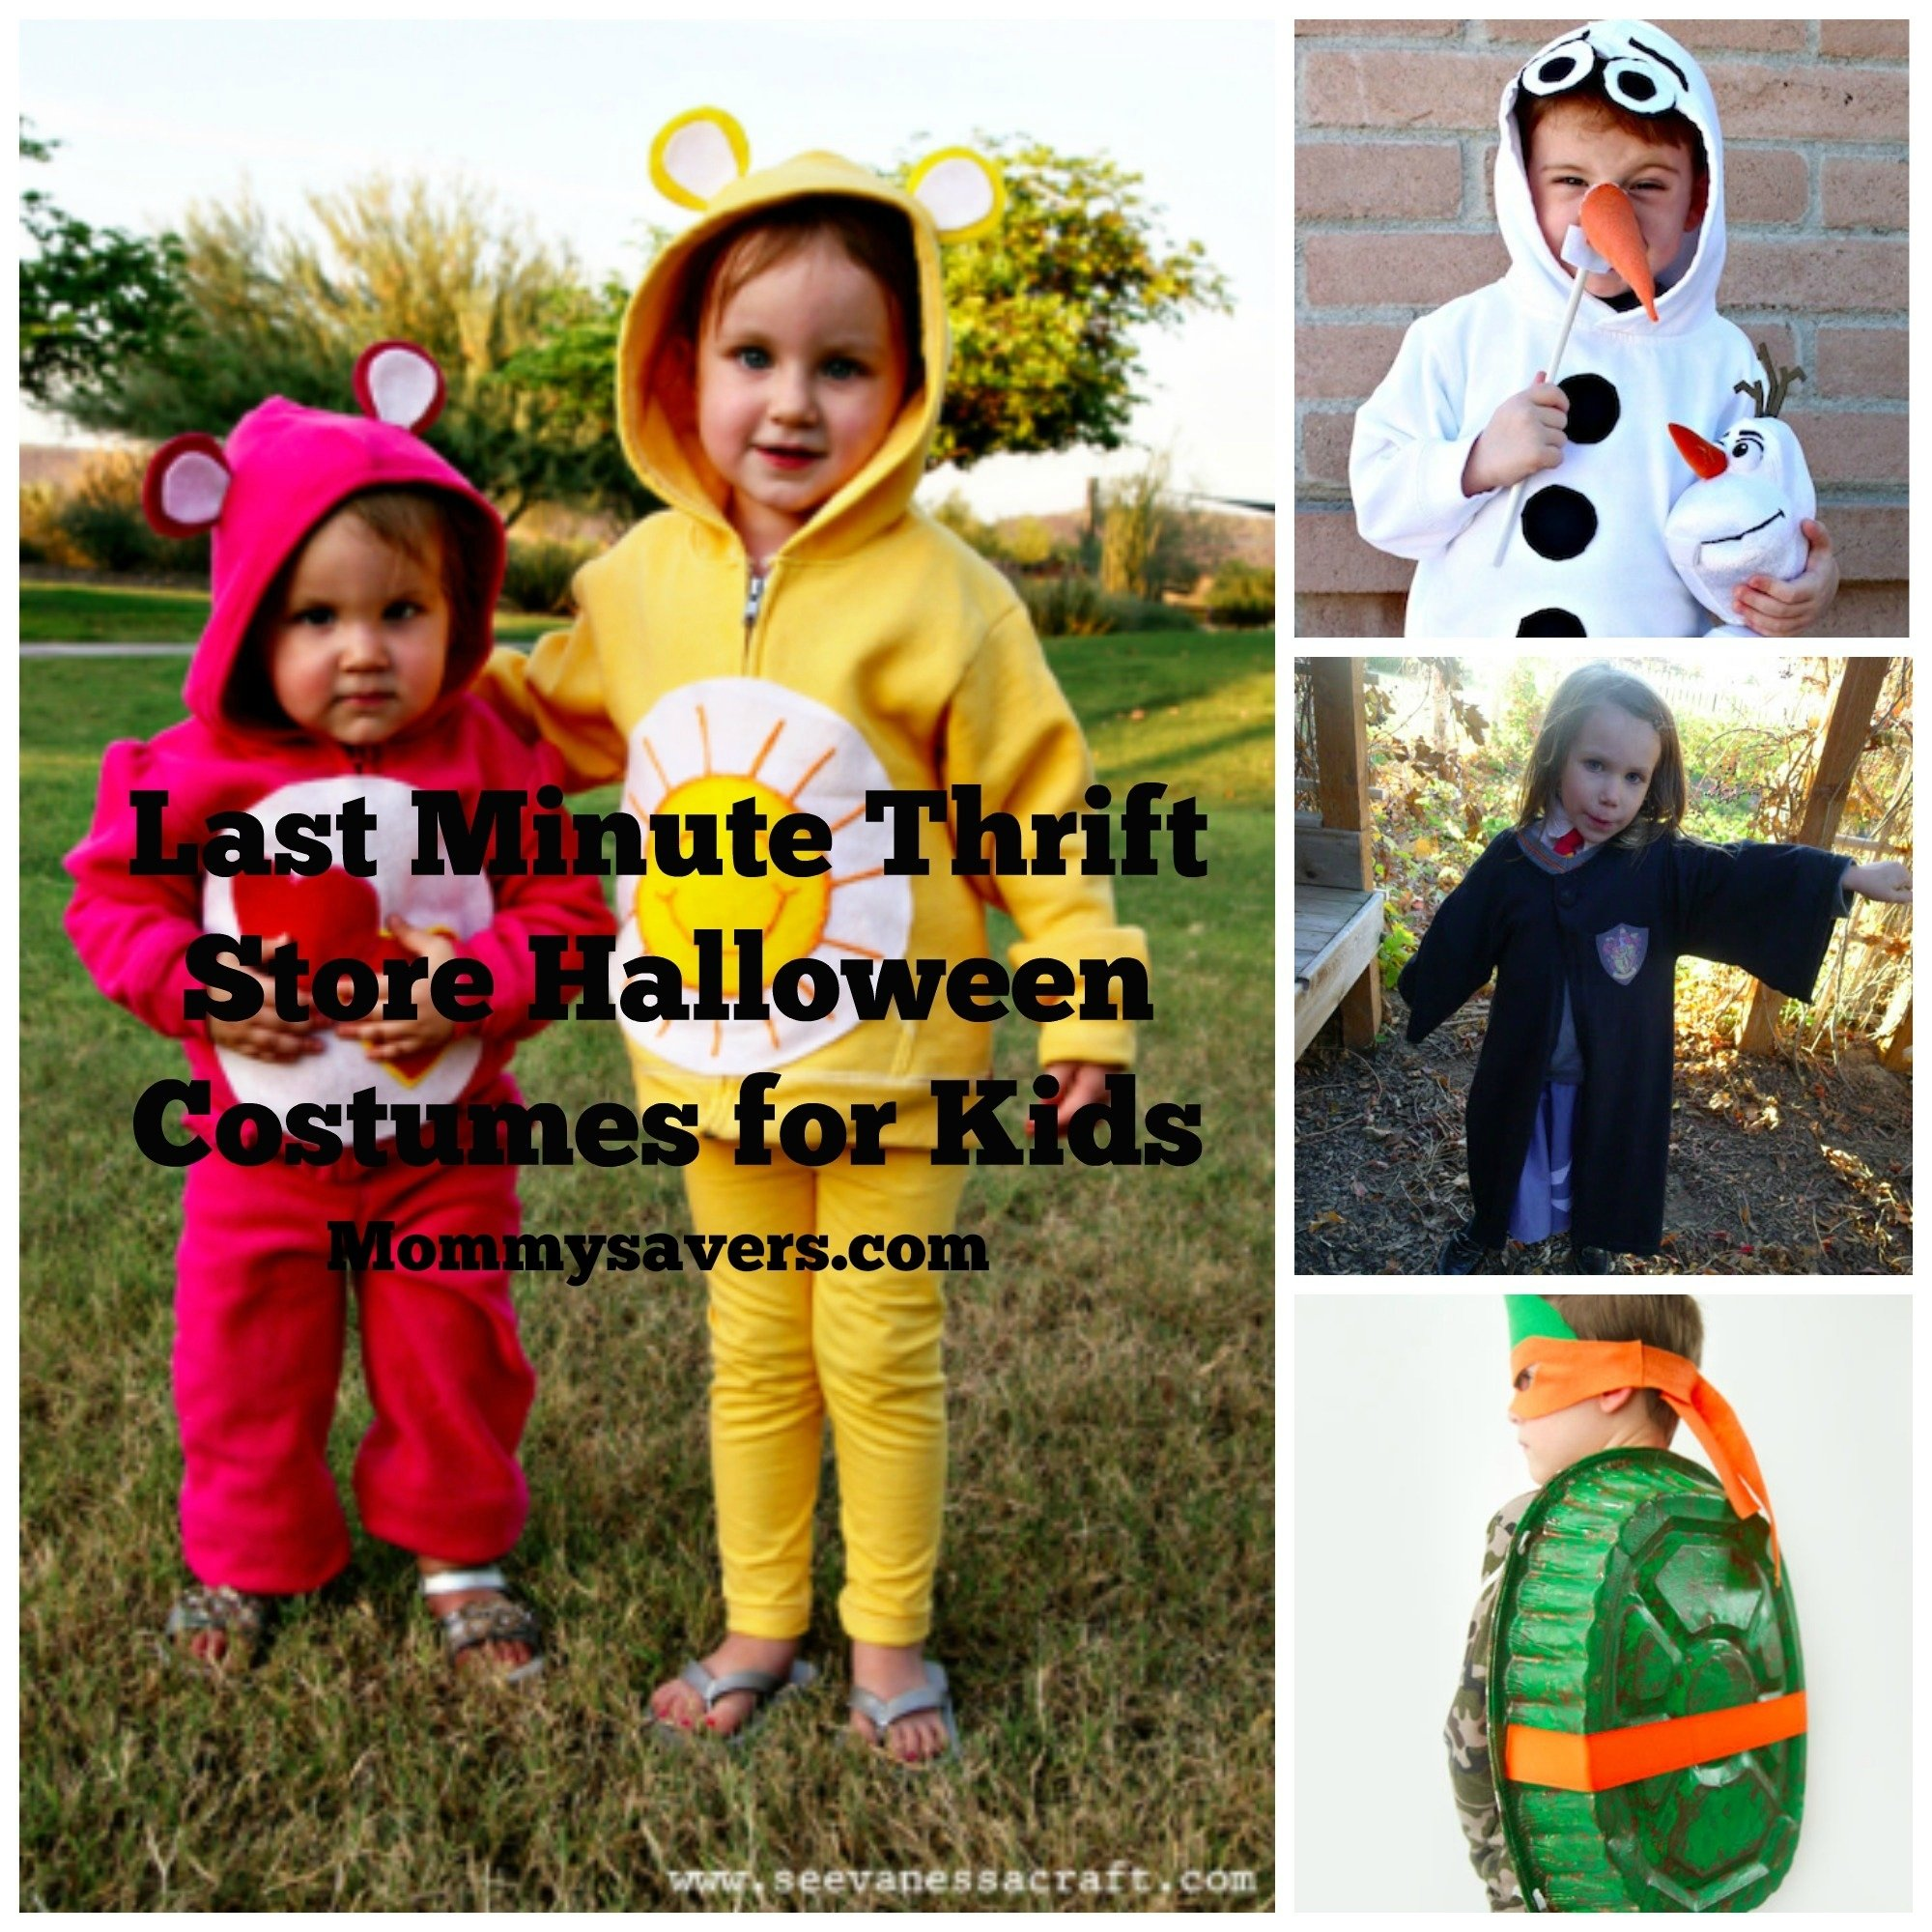 10 Cute Last Minute Halloween Costume Ideas last minute thrift store halloween costumes for kids mommysavers 2 2021